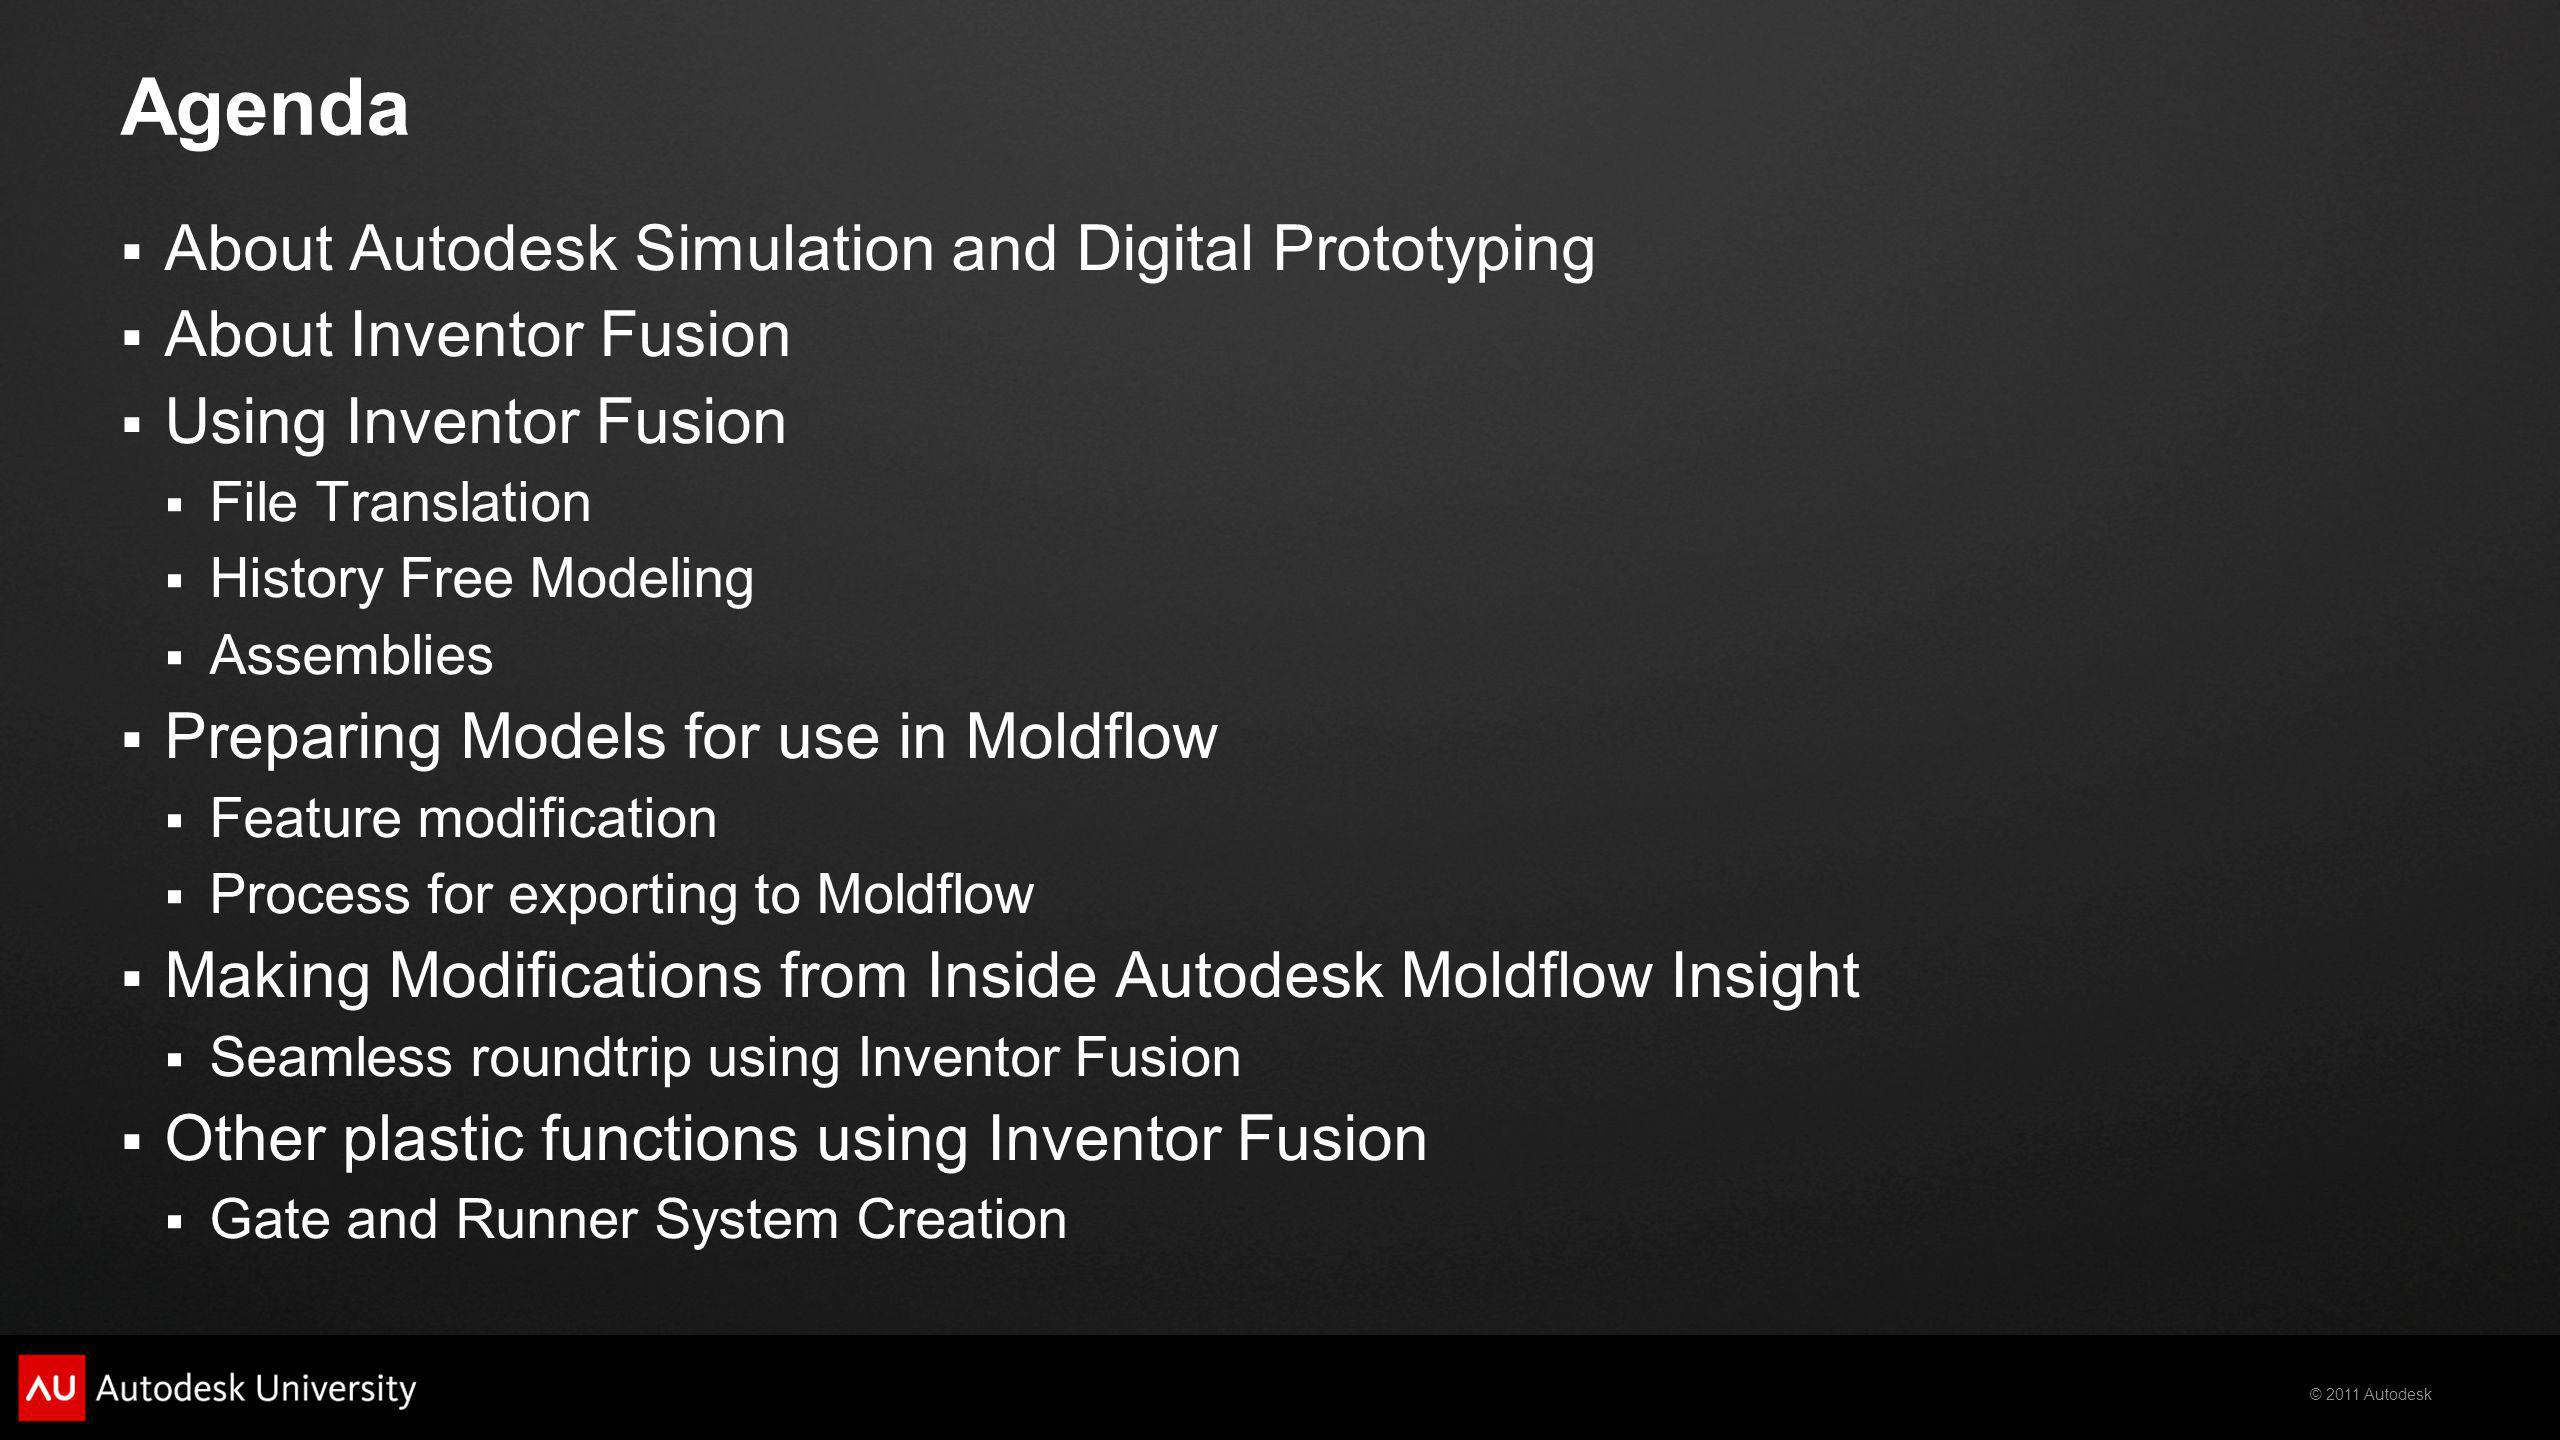 Agenda About Autodesk Simulation and Digital Prototyping